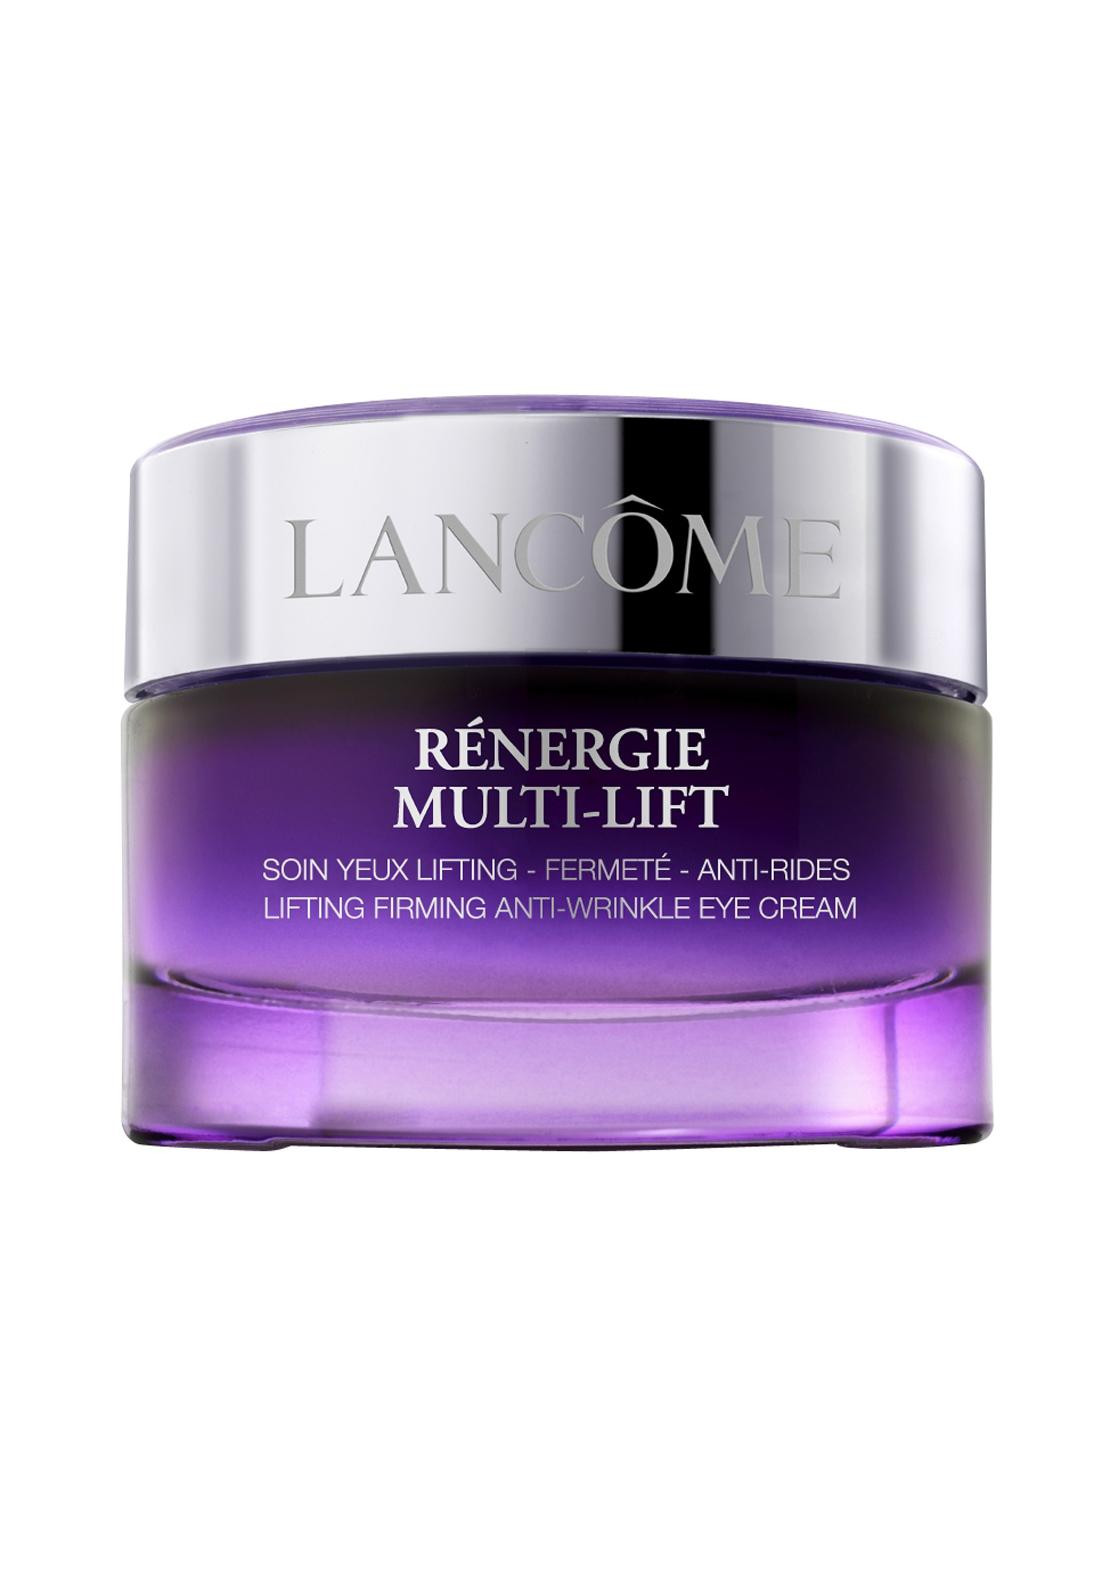 Lancôme Renergie Yeux Multi-Lift Eye Cream 15ml